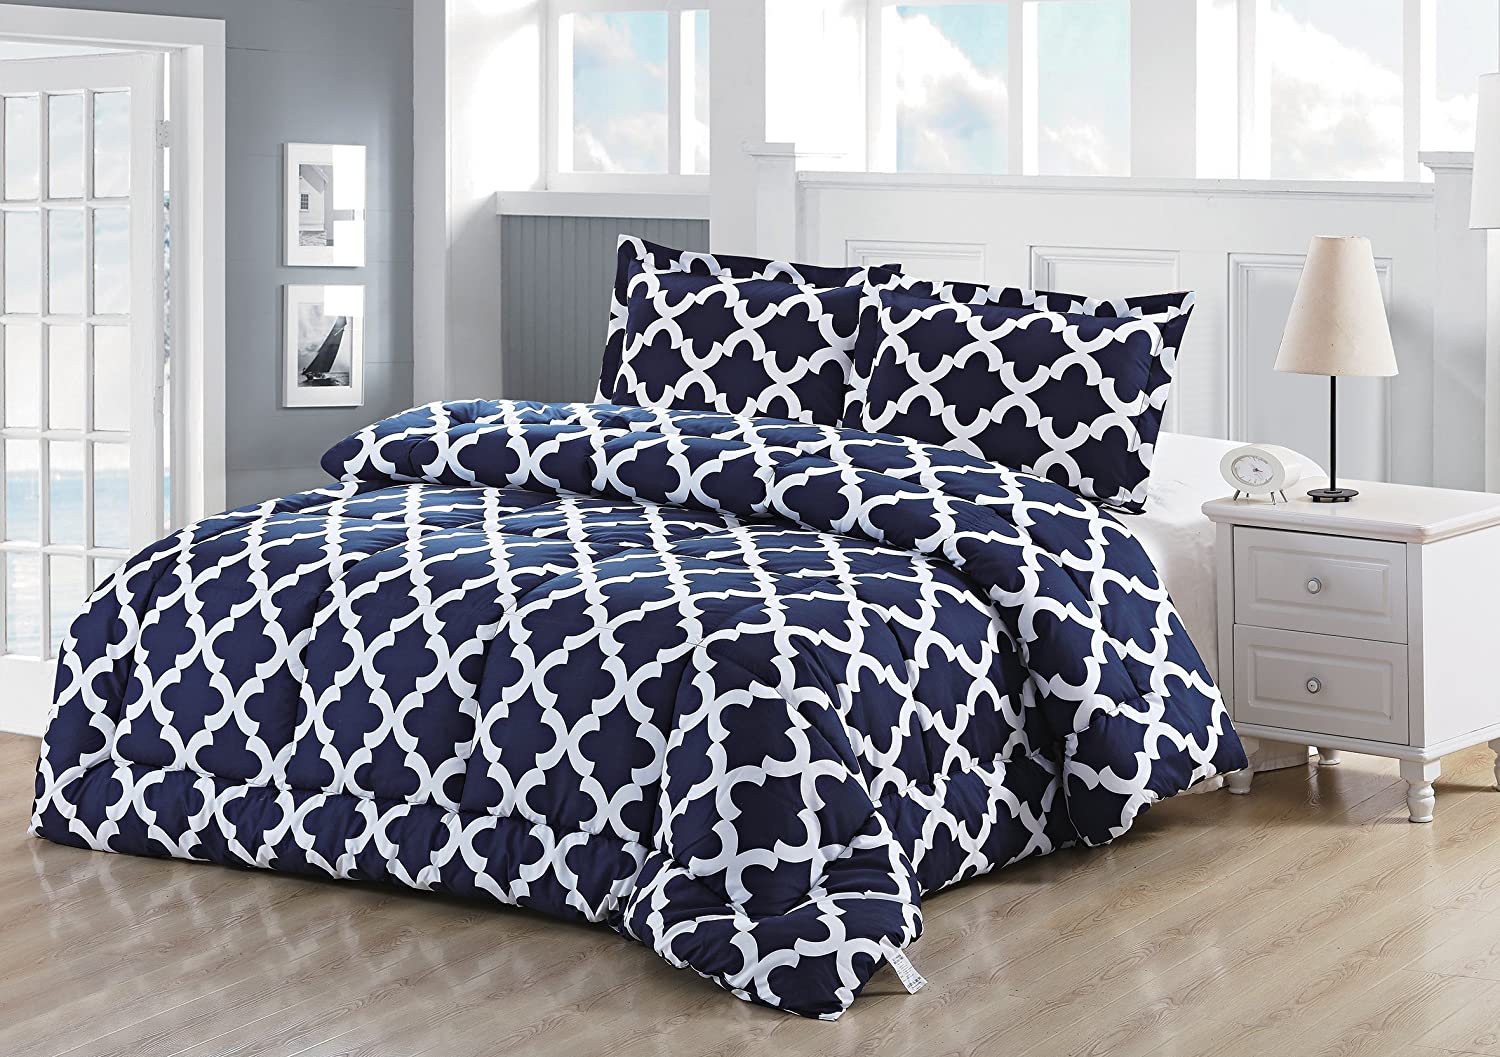 Black and blue bed sheets - Comforter Set Navy Luxurious Soft Brushed Microfiber